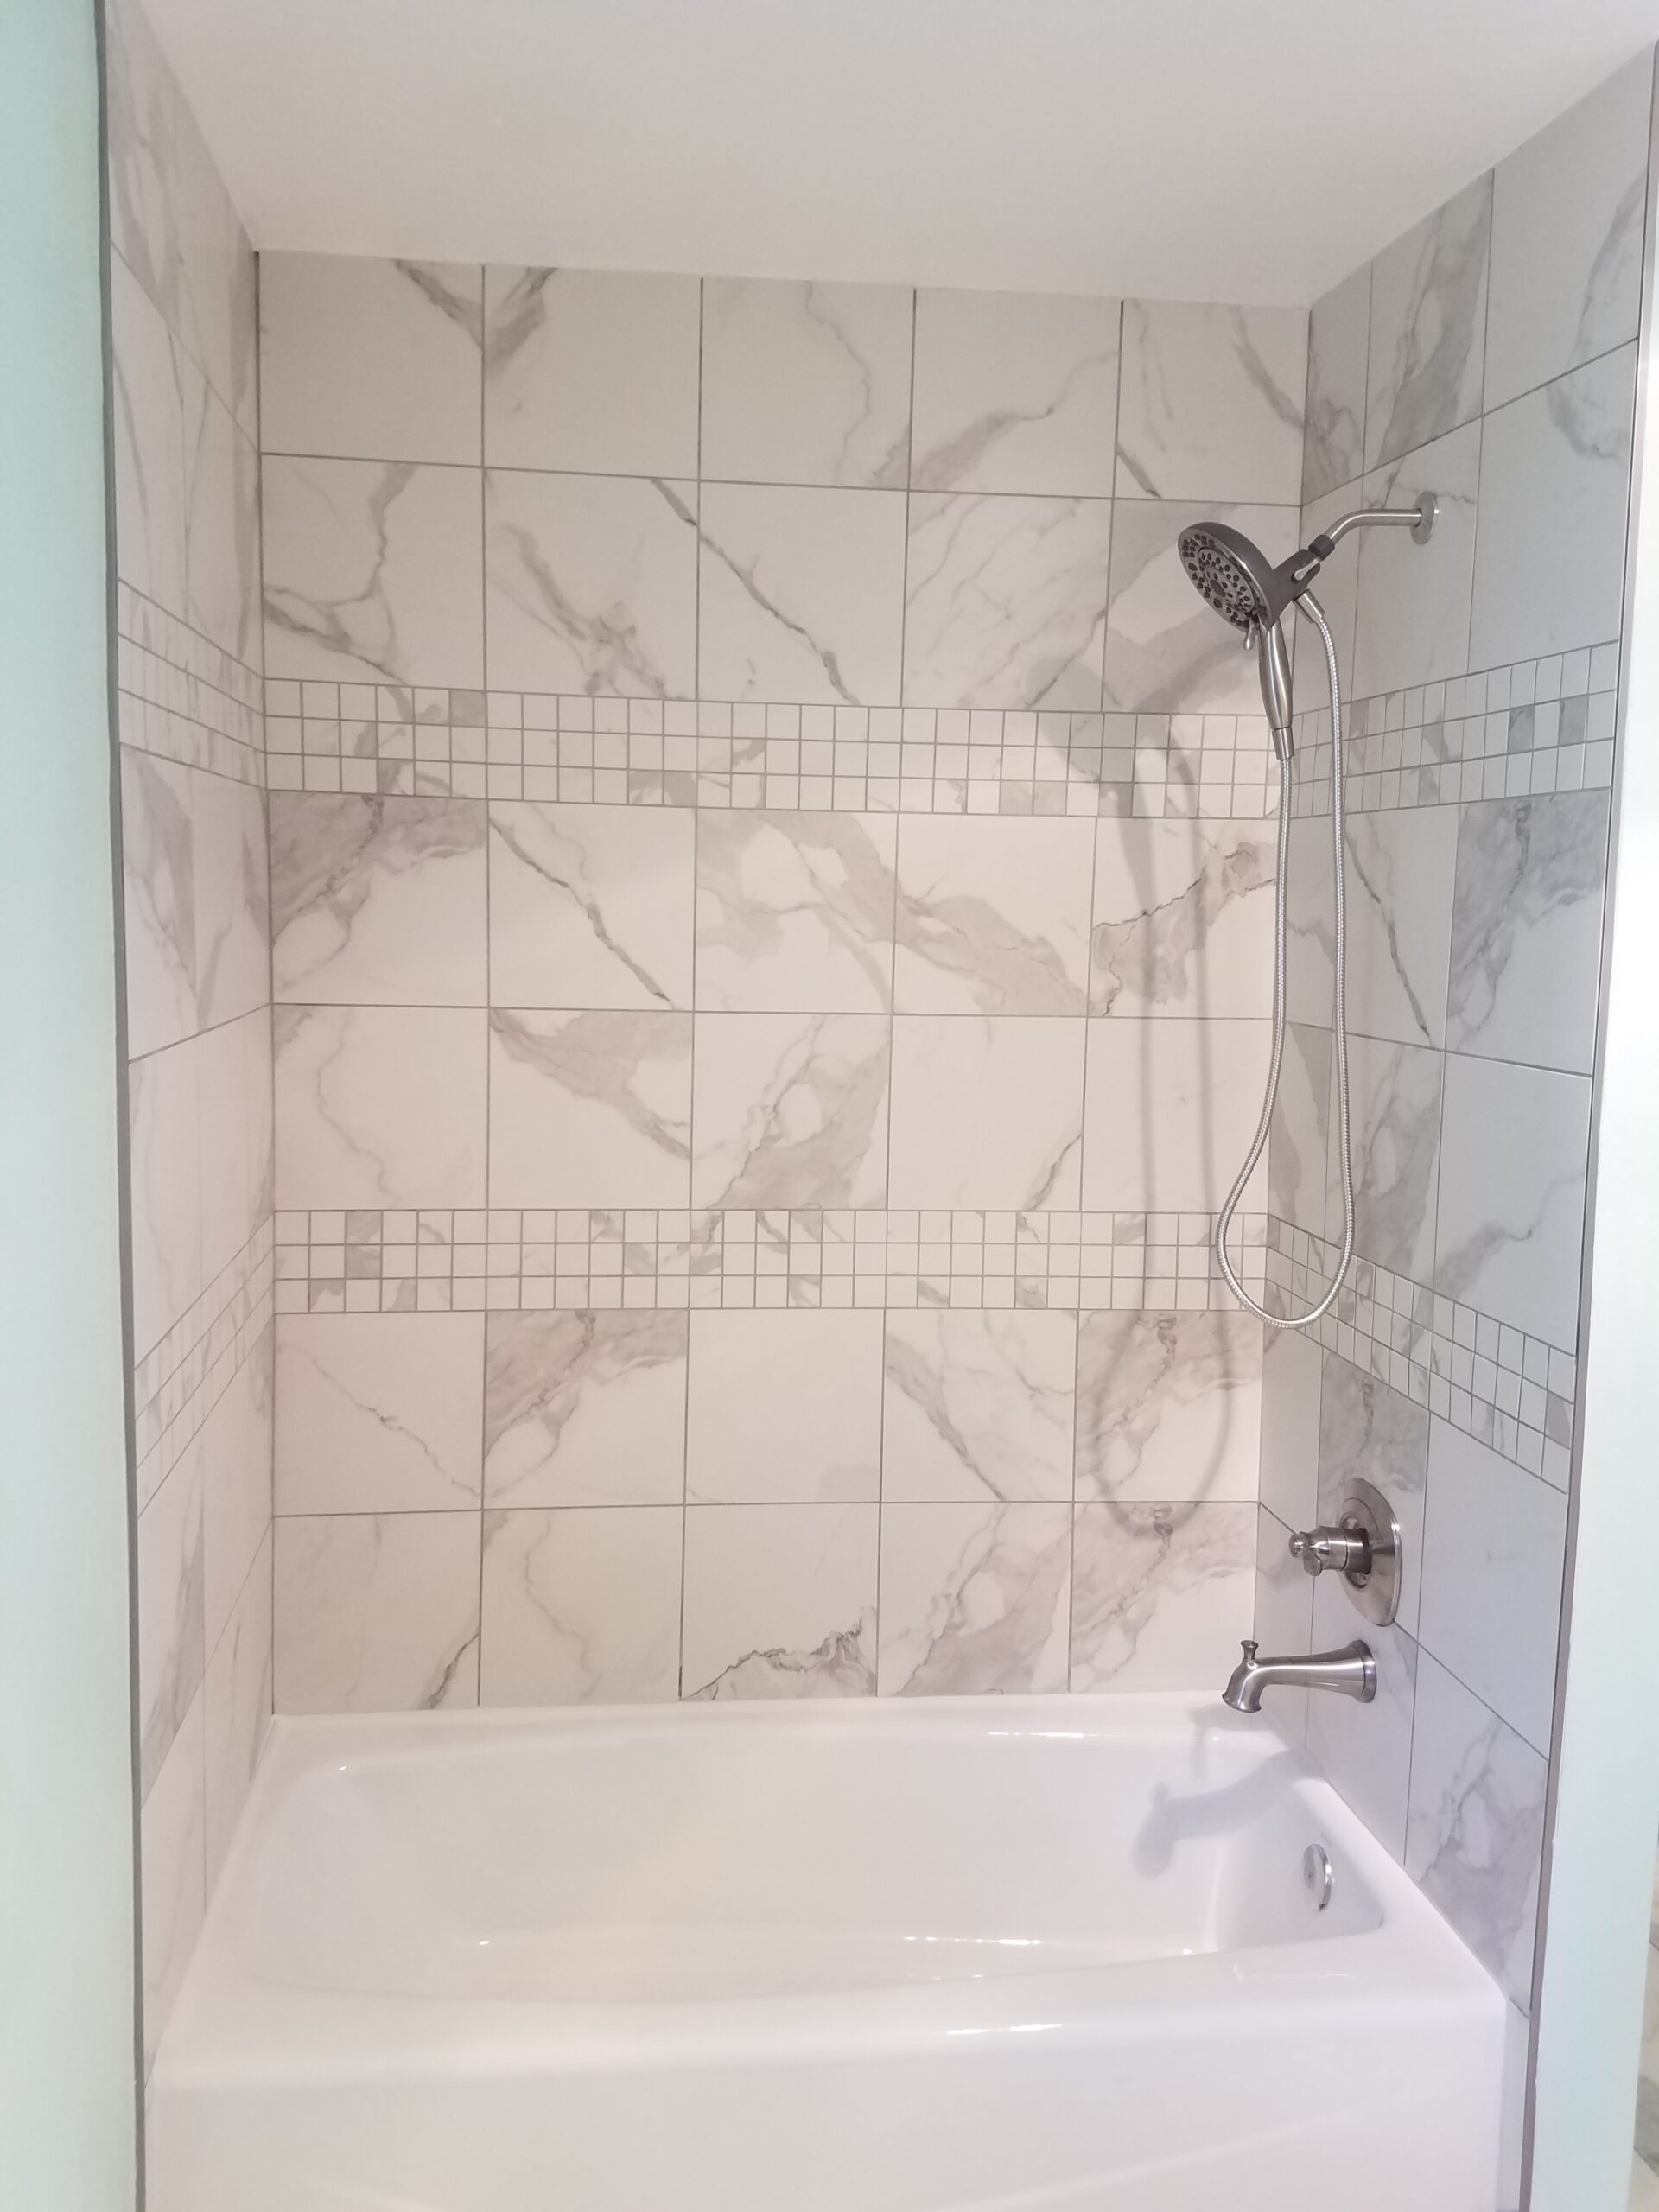 image showing shower head